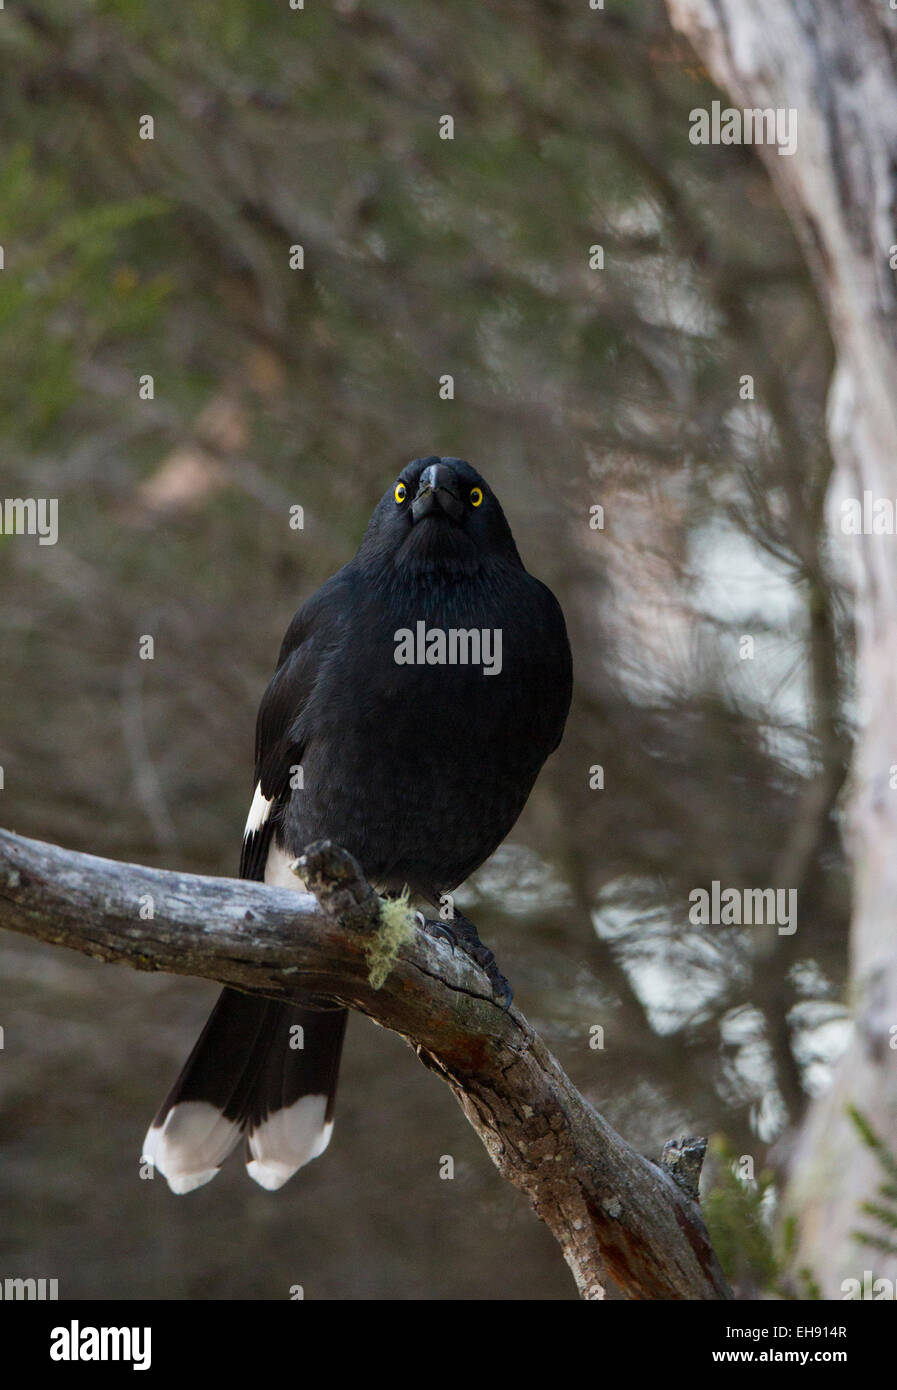 Pied Currawong (Strepera graculina) perched in a tree, Australia - Stock Image